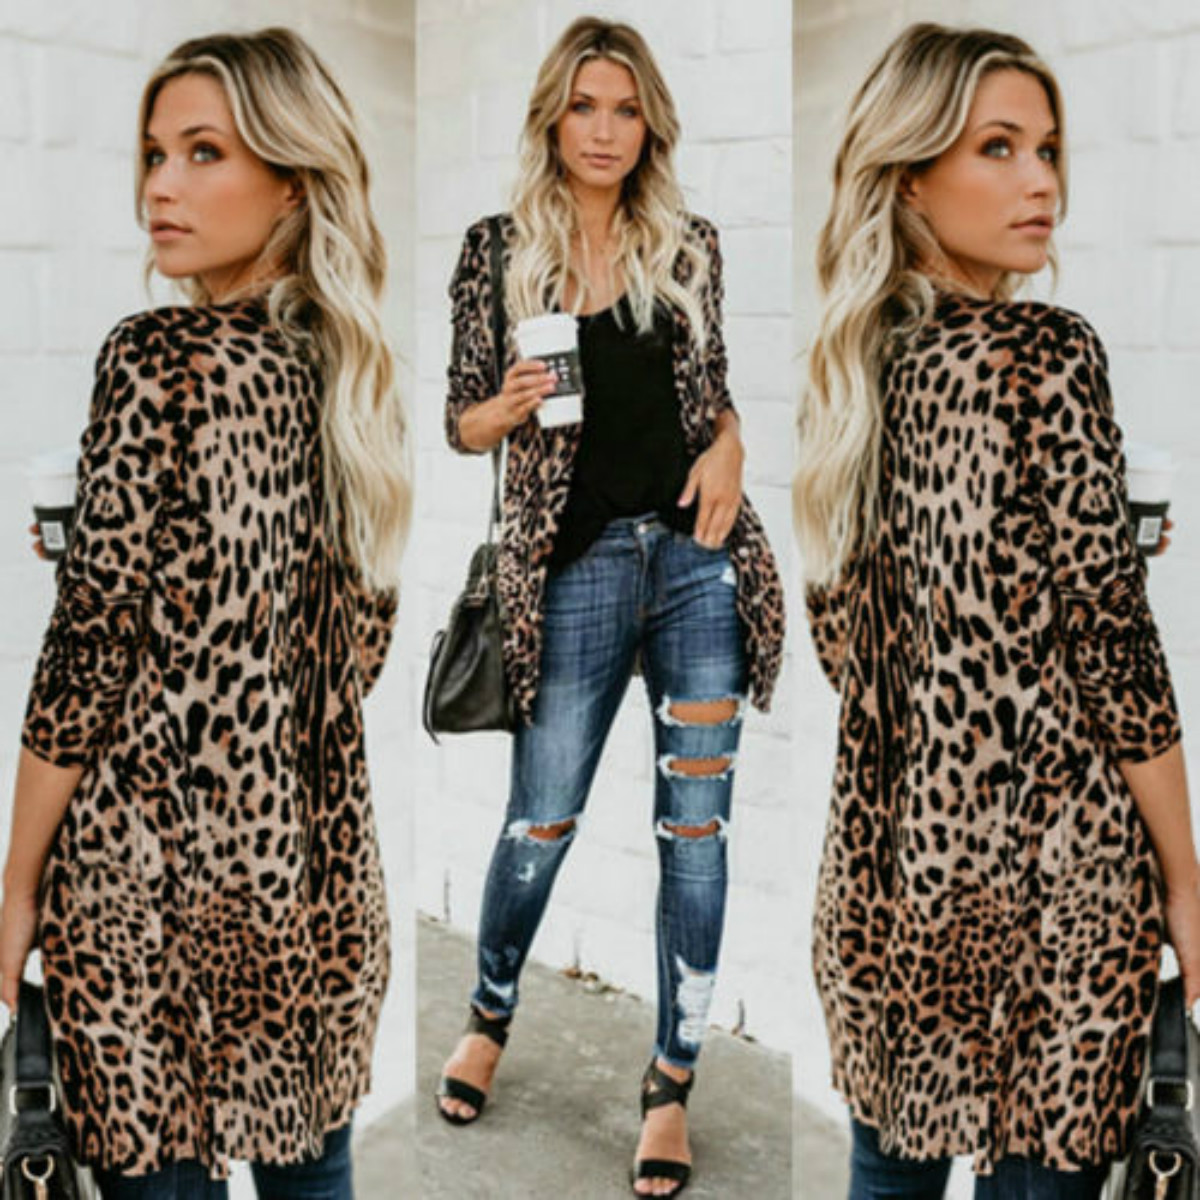 Jackets 2018 Hot Autumn Classic New Fashion Women V Collar Long Sleeve Leopard print Coat Jacket Jackets 2018 Hot Autumn Classic New Fashion Women V Collar Long Sleeve Leopard print Coat Jacket S-XL